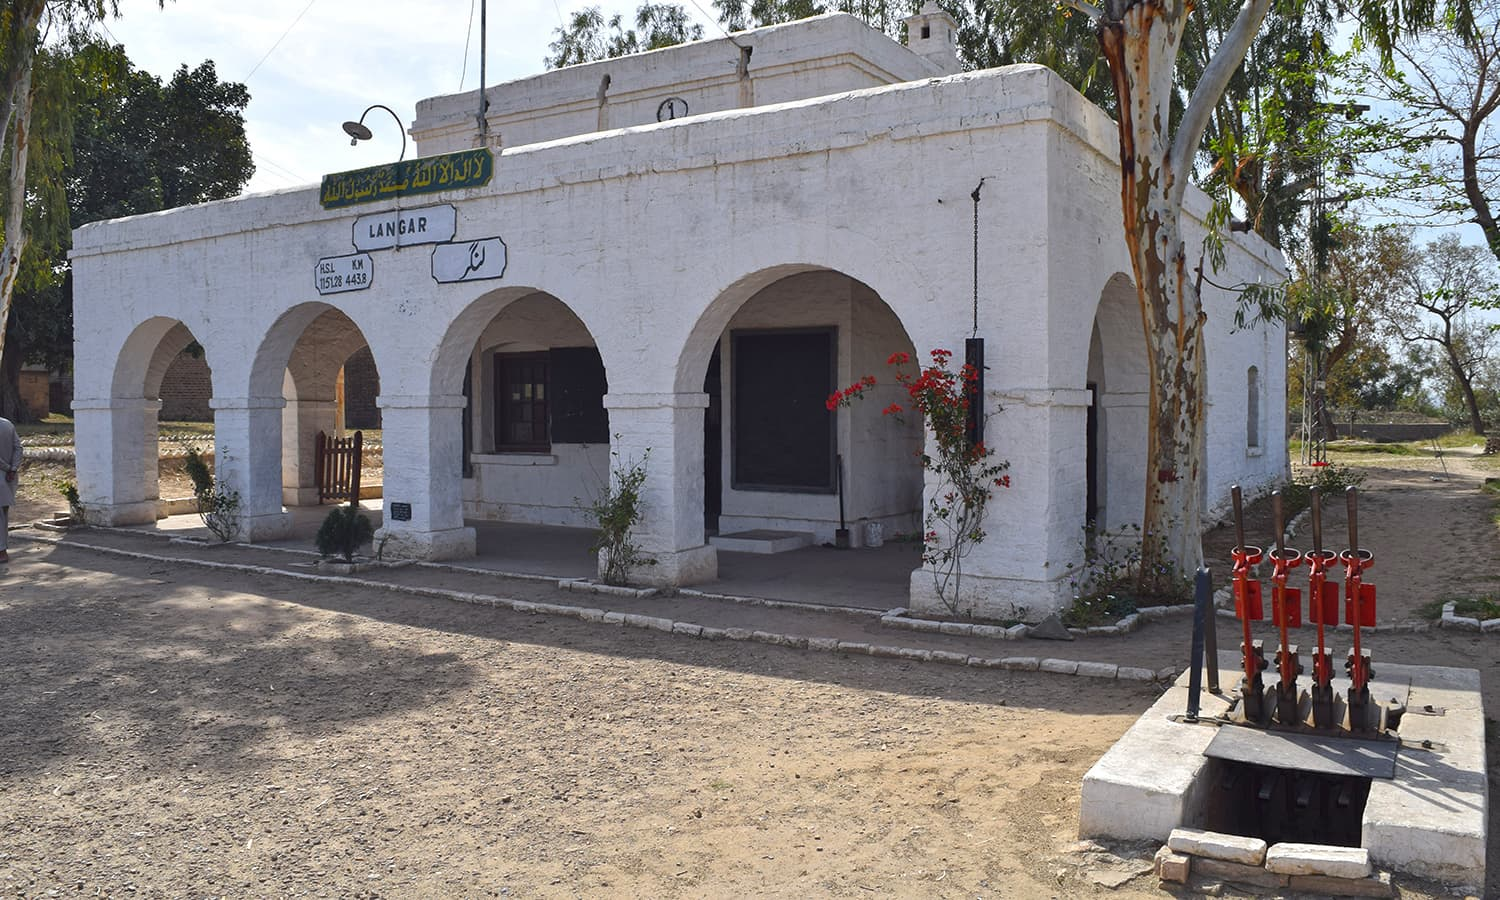 The Langar station near Jand in Attock.